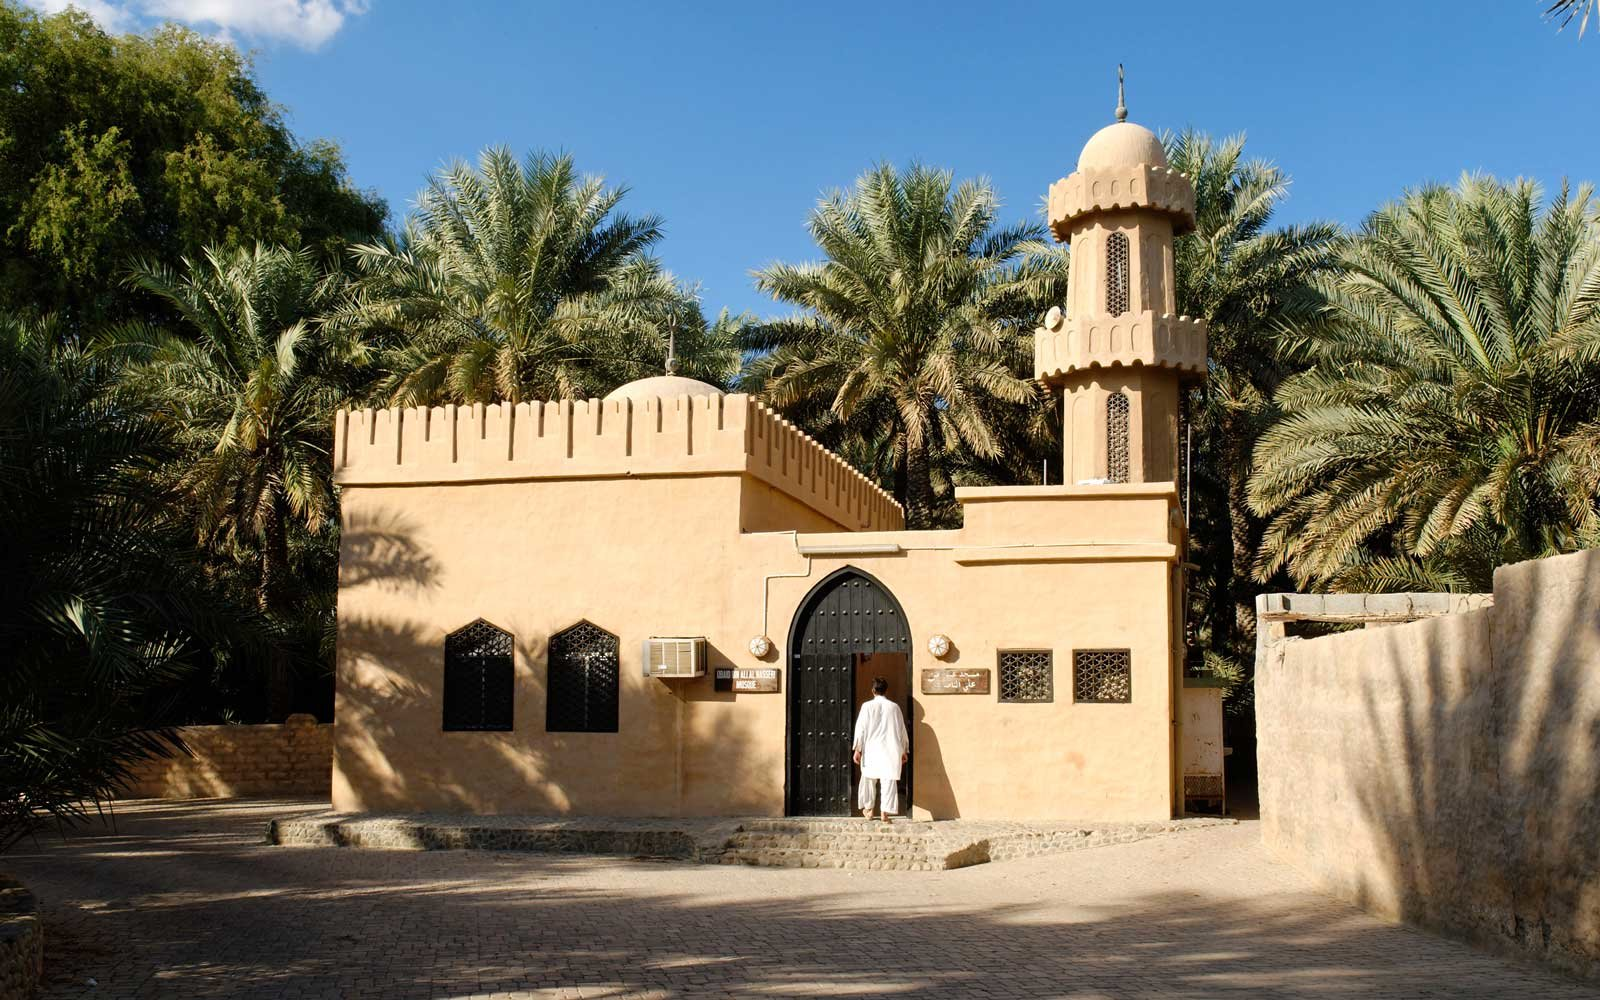 Mosque in the palm garden of the Al Ain Oasis, Emirate of Abu Dhabi, United Arab Emirates,